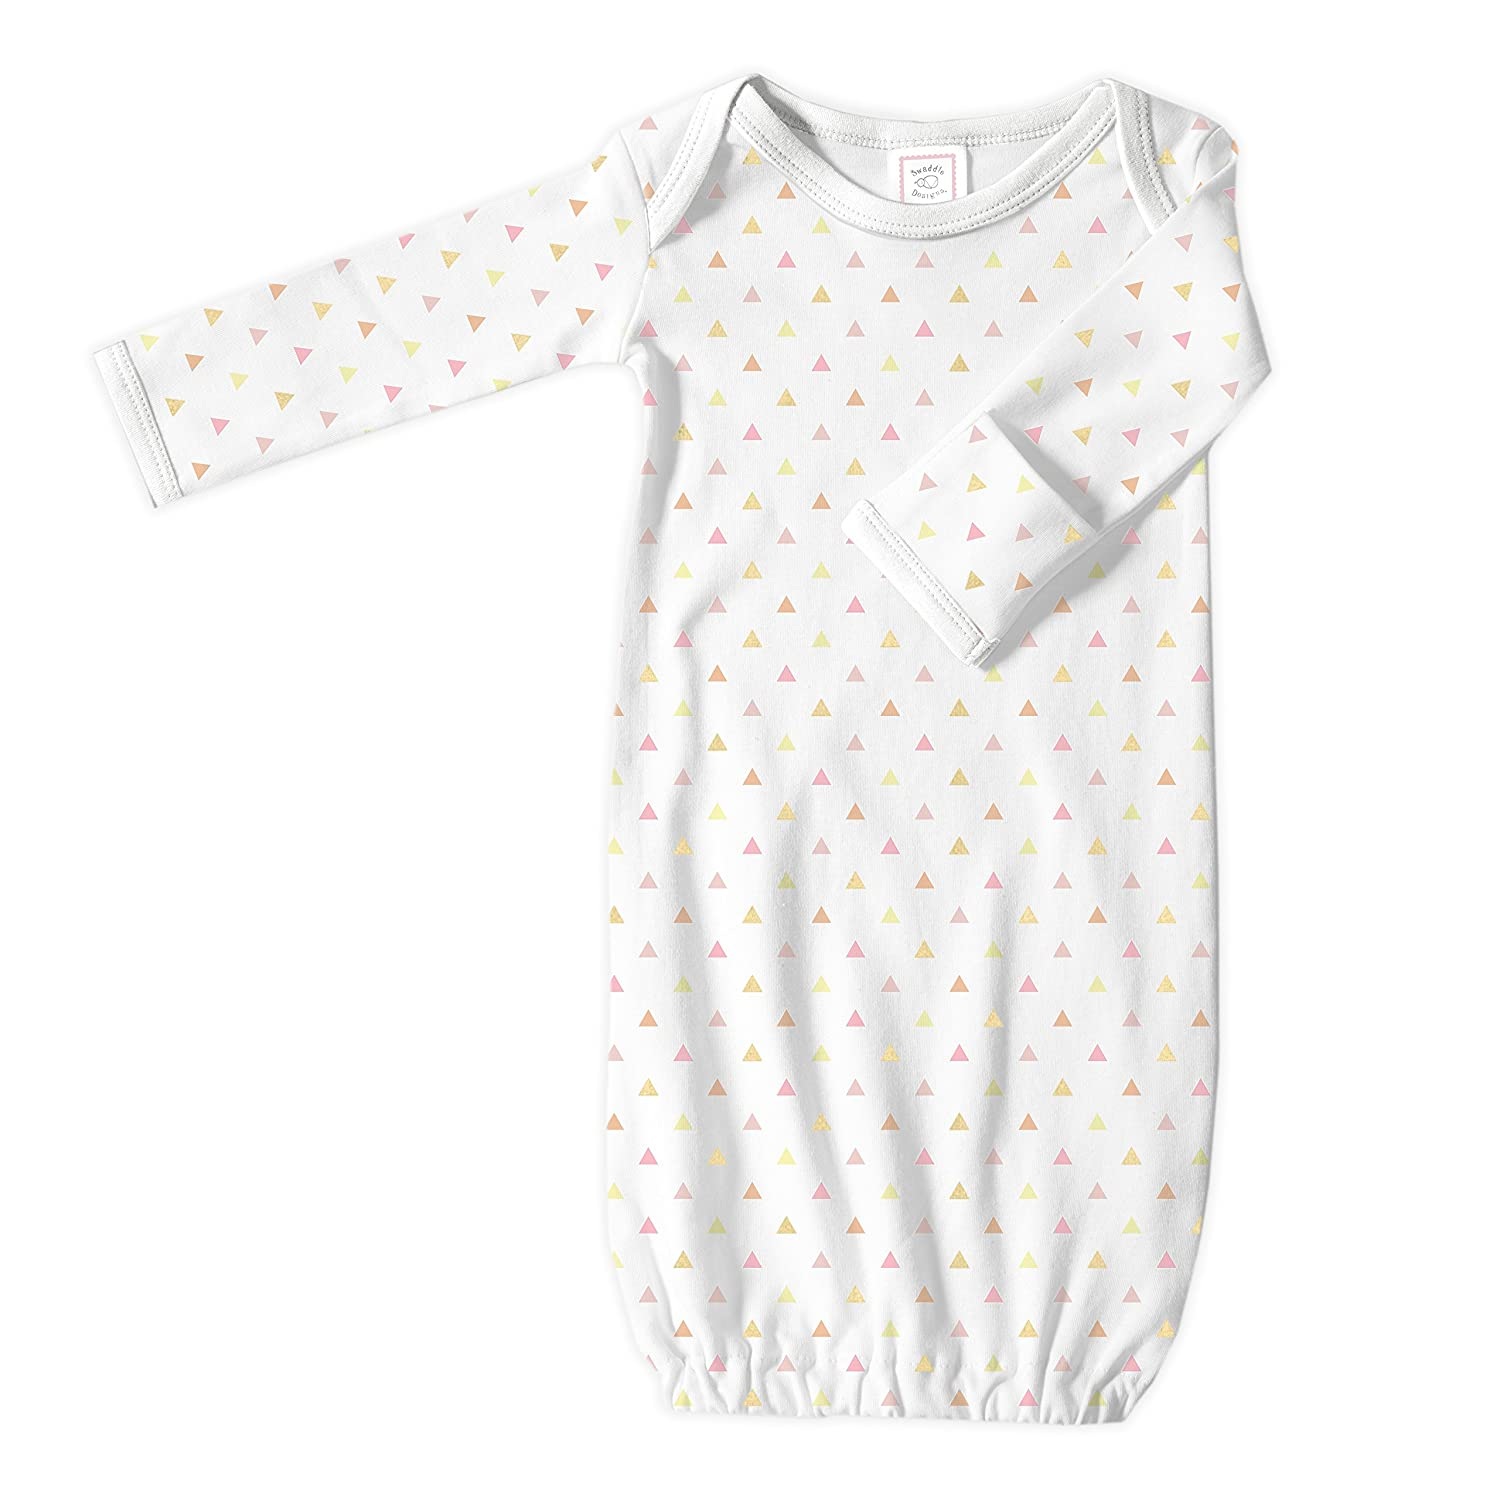 Newborn SwaddleDesigns Baby Infant Cotton Gown with Mitten Foldover Cuffs Sterling Tiny Triangles